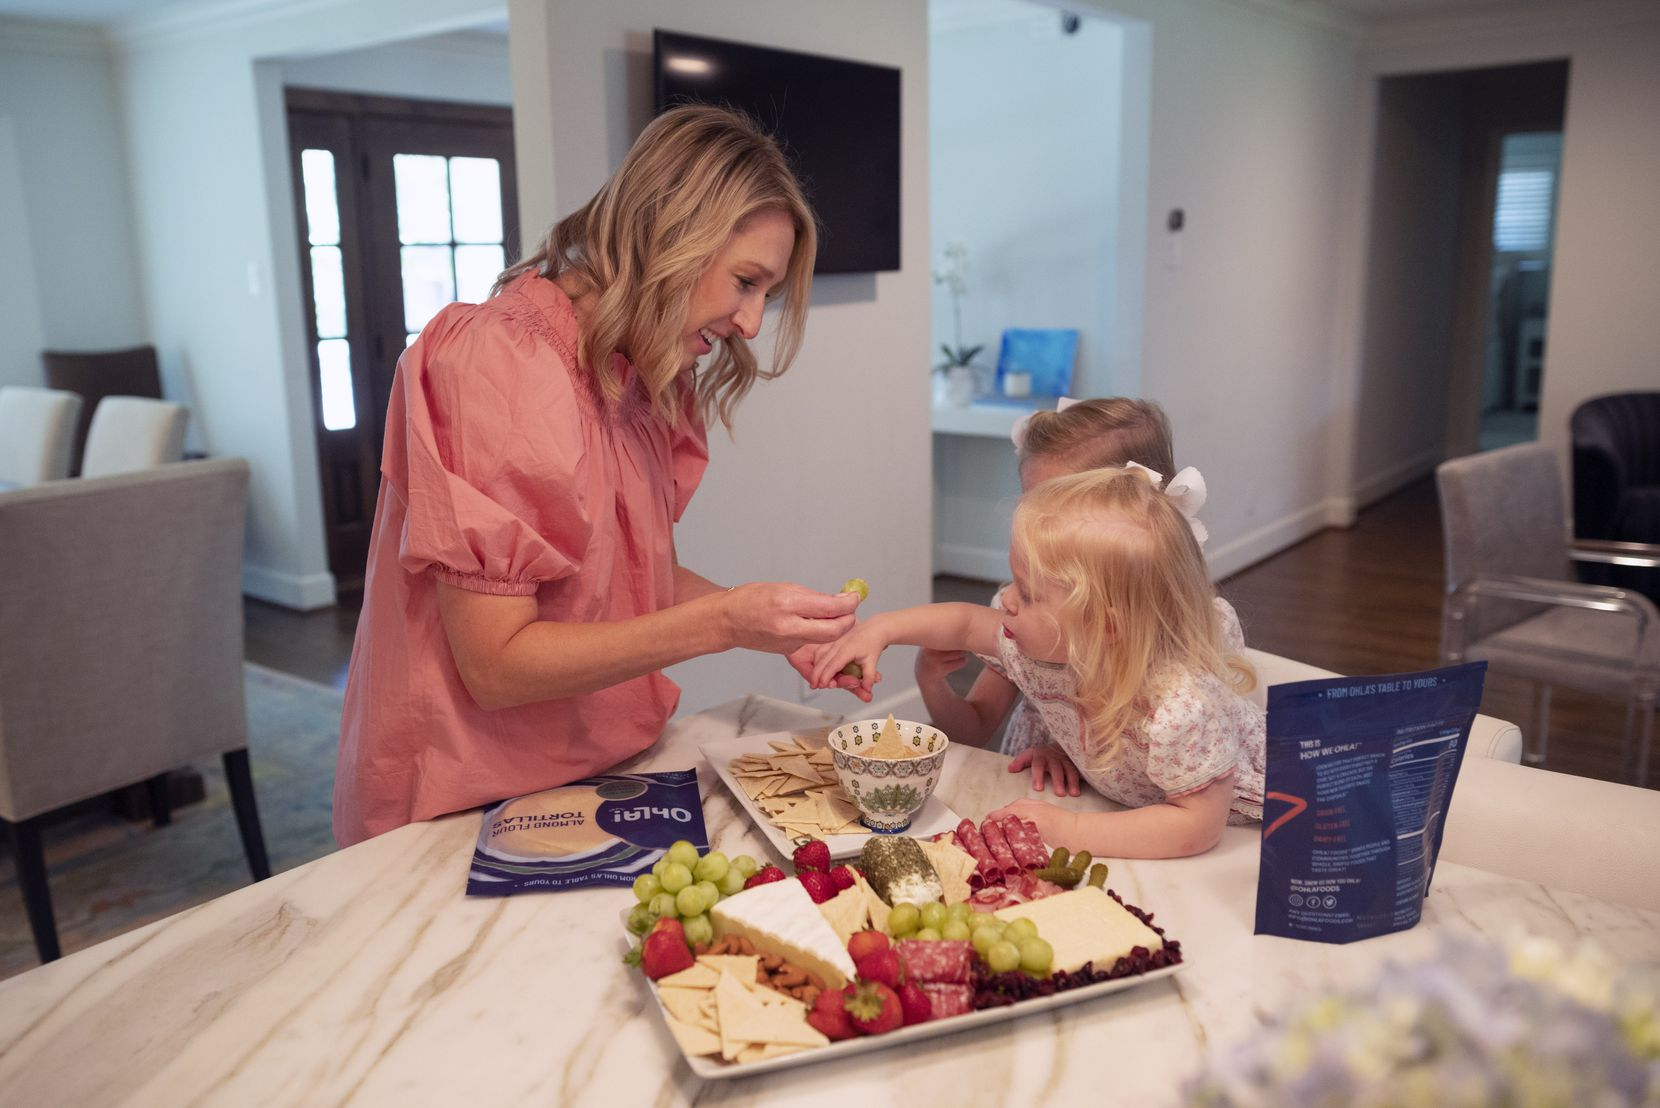 Lauren Schwalb, founder of Ohla! Foods, feeds a snack of ChipOhla! chips to her children Olivia, 4, and Hadley, 2, right, at her home in Dallas.